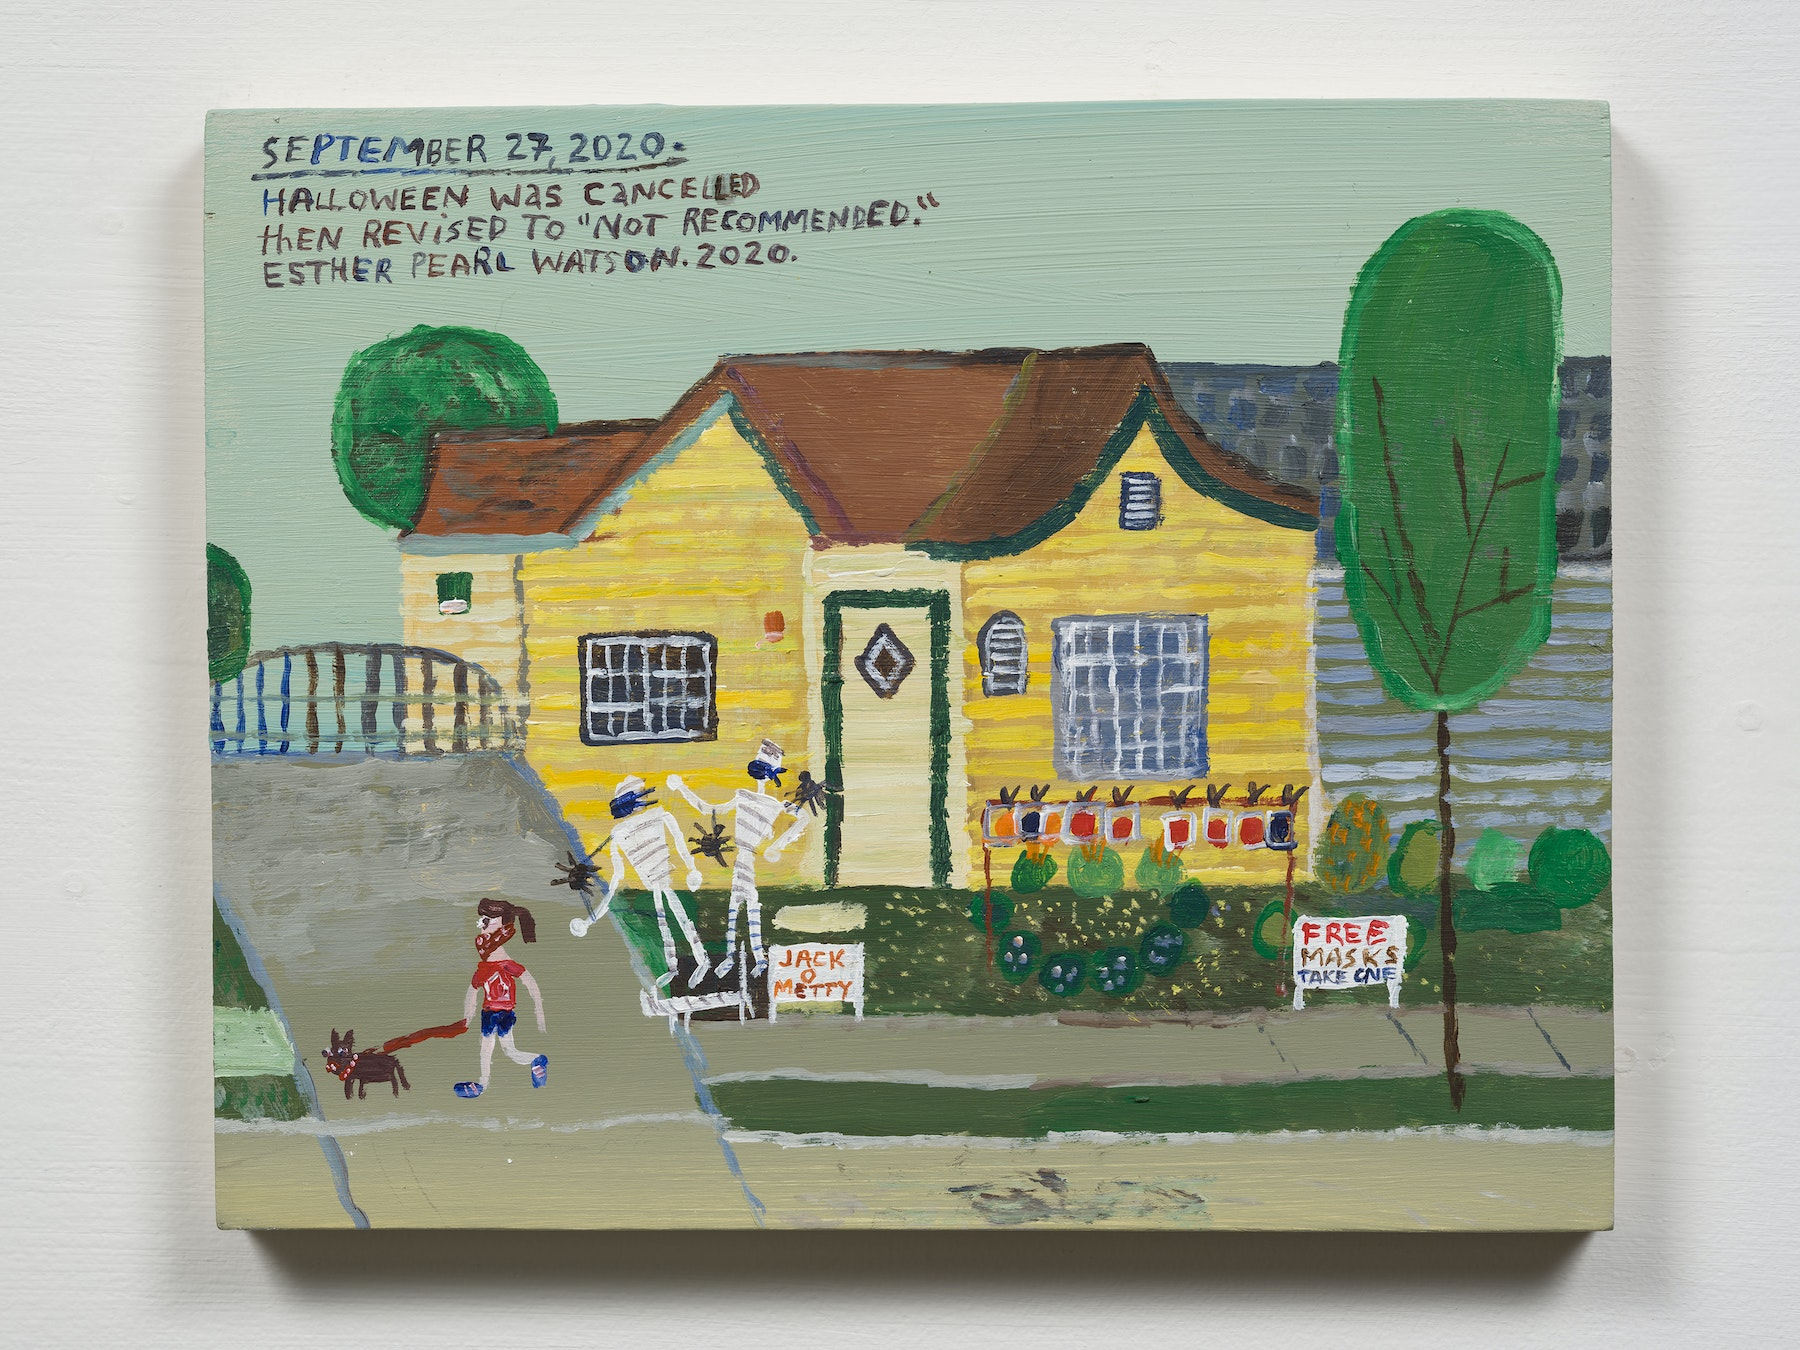 """Esther Pearl Watson """"September 27, Halloween Not Recommended,"""" 2020 Acrylic with pencil on panel 8 x 10"""" [HxW] (20.32 x 25.4 cm) Inventory #EPW346 Courtesy of the artist and Vielmetter Los Angeles Photo credit: Jeff Mclane"""